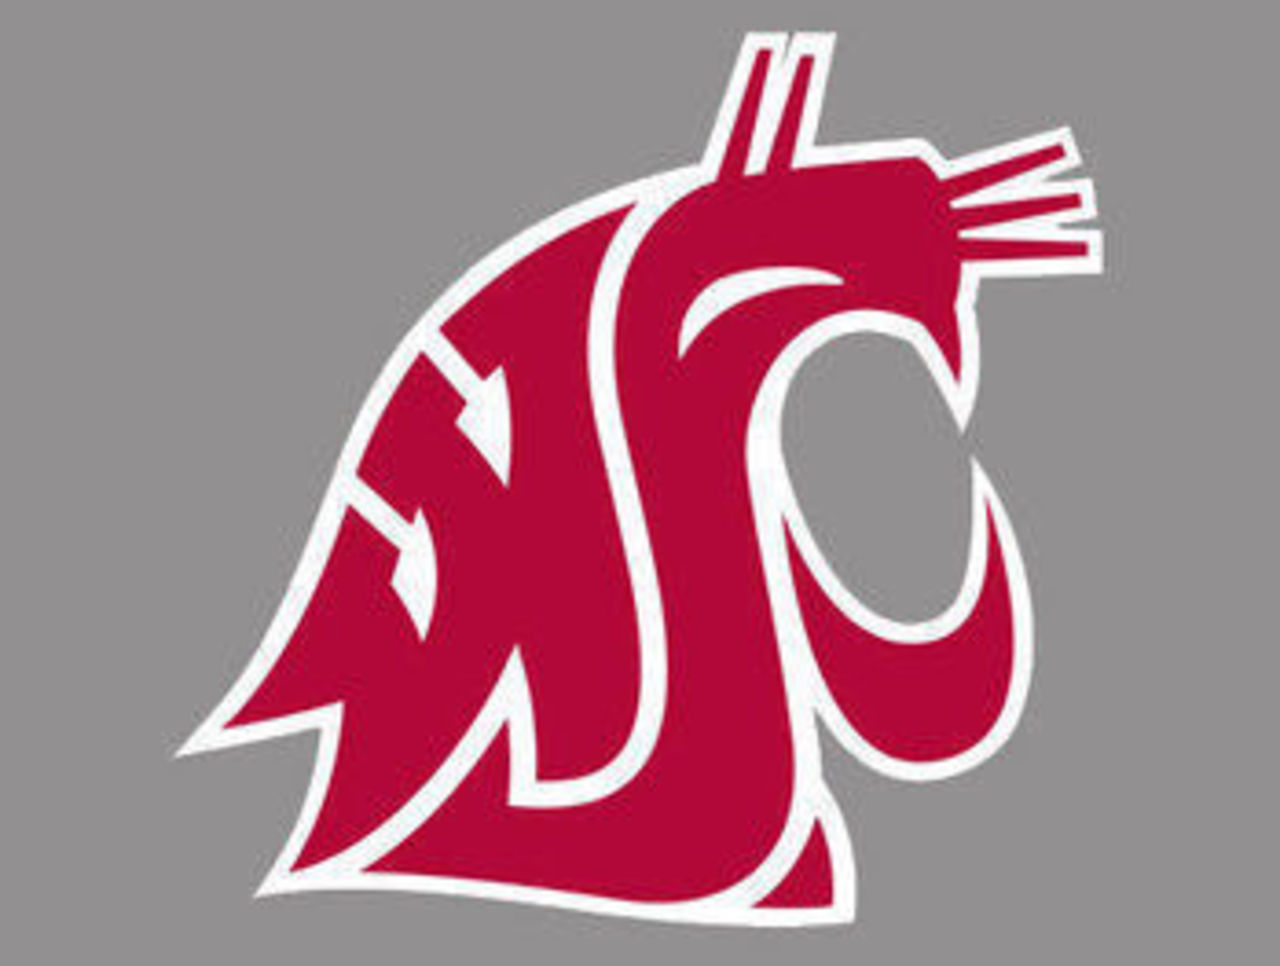 on meaningless tribal tattoo design the Washington State Cougars 1280x966